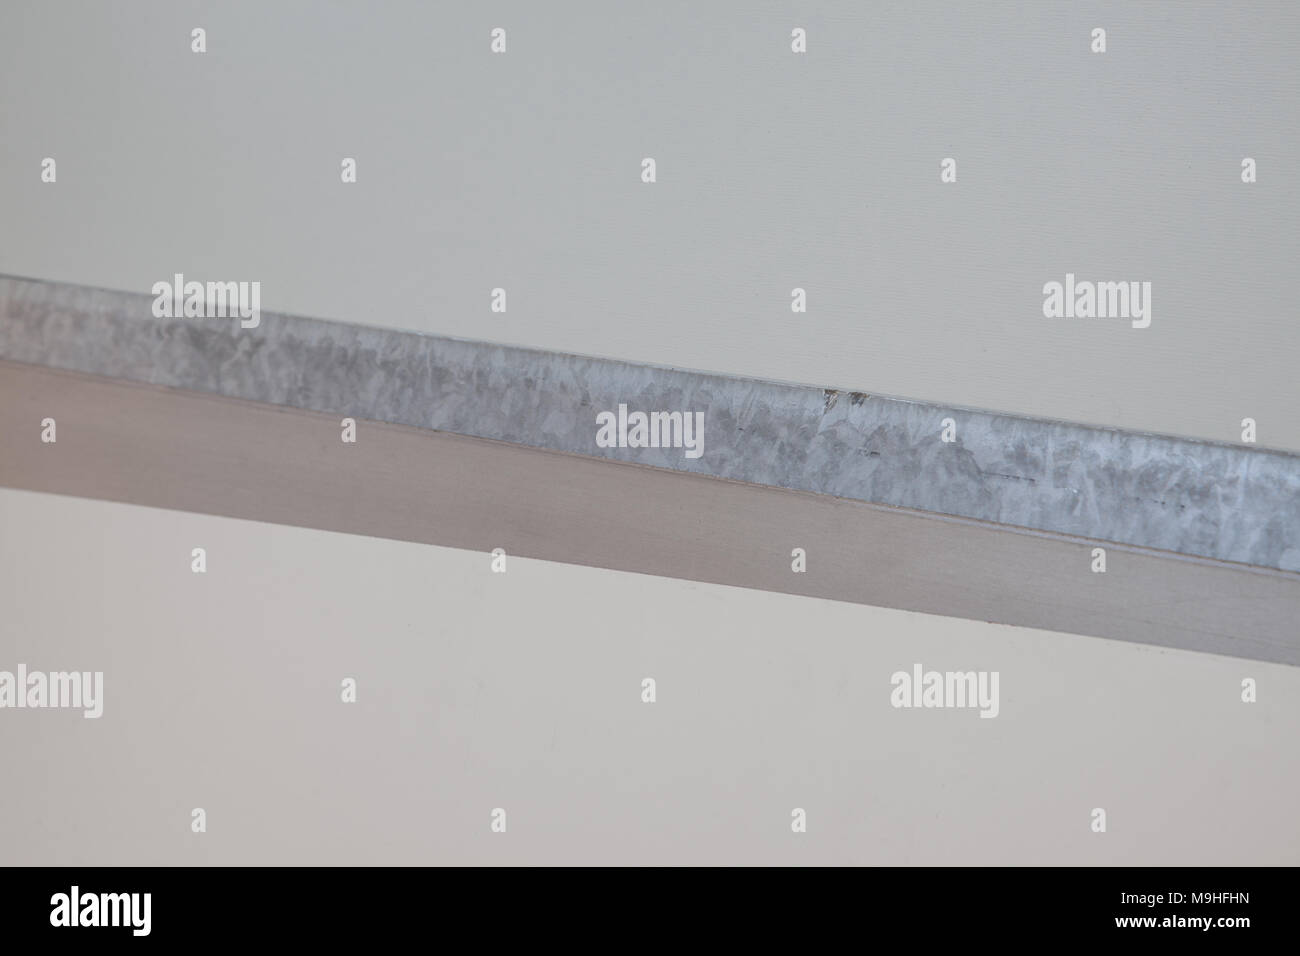 Pieces Galvanized Painted Sheet Metal Background - Stock Image